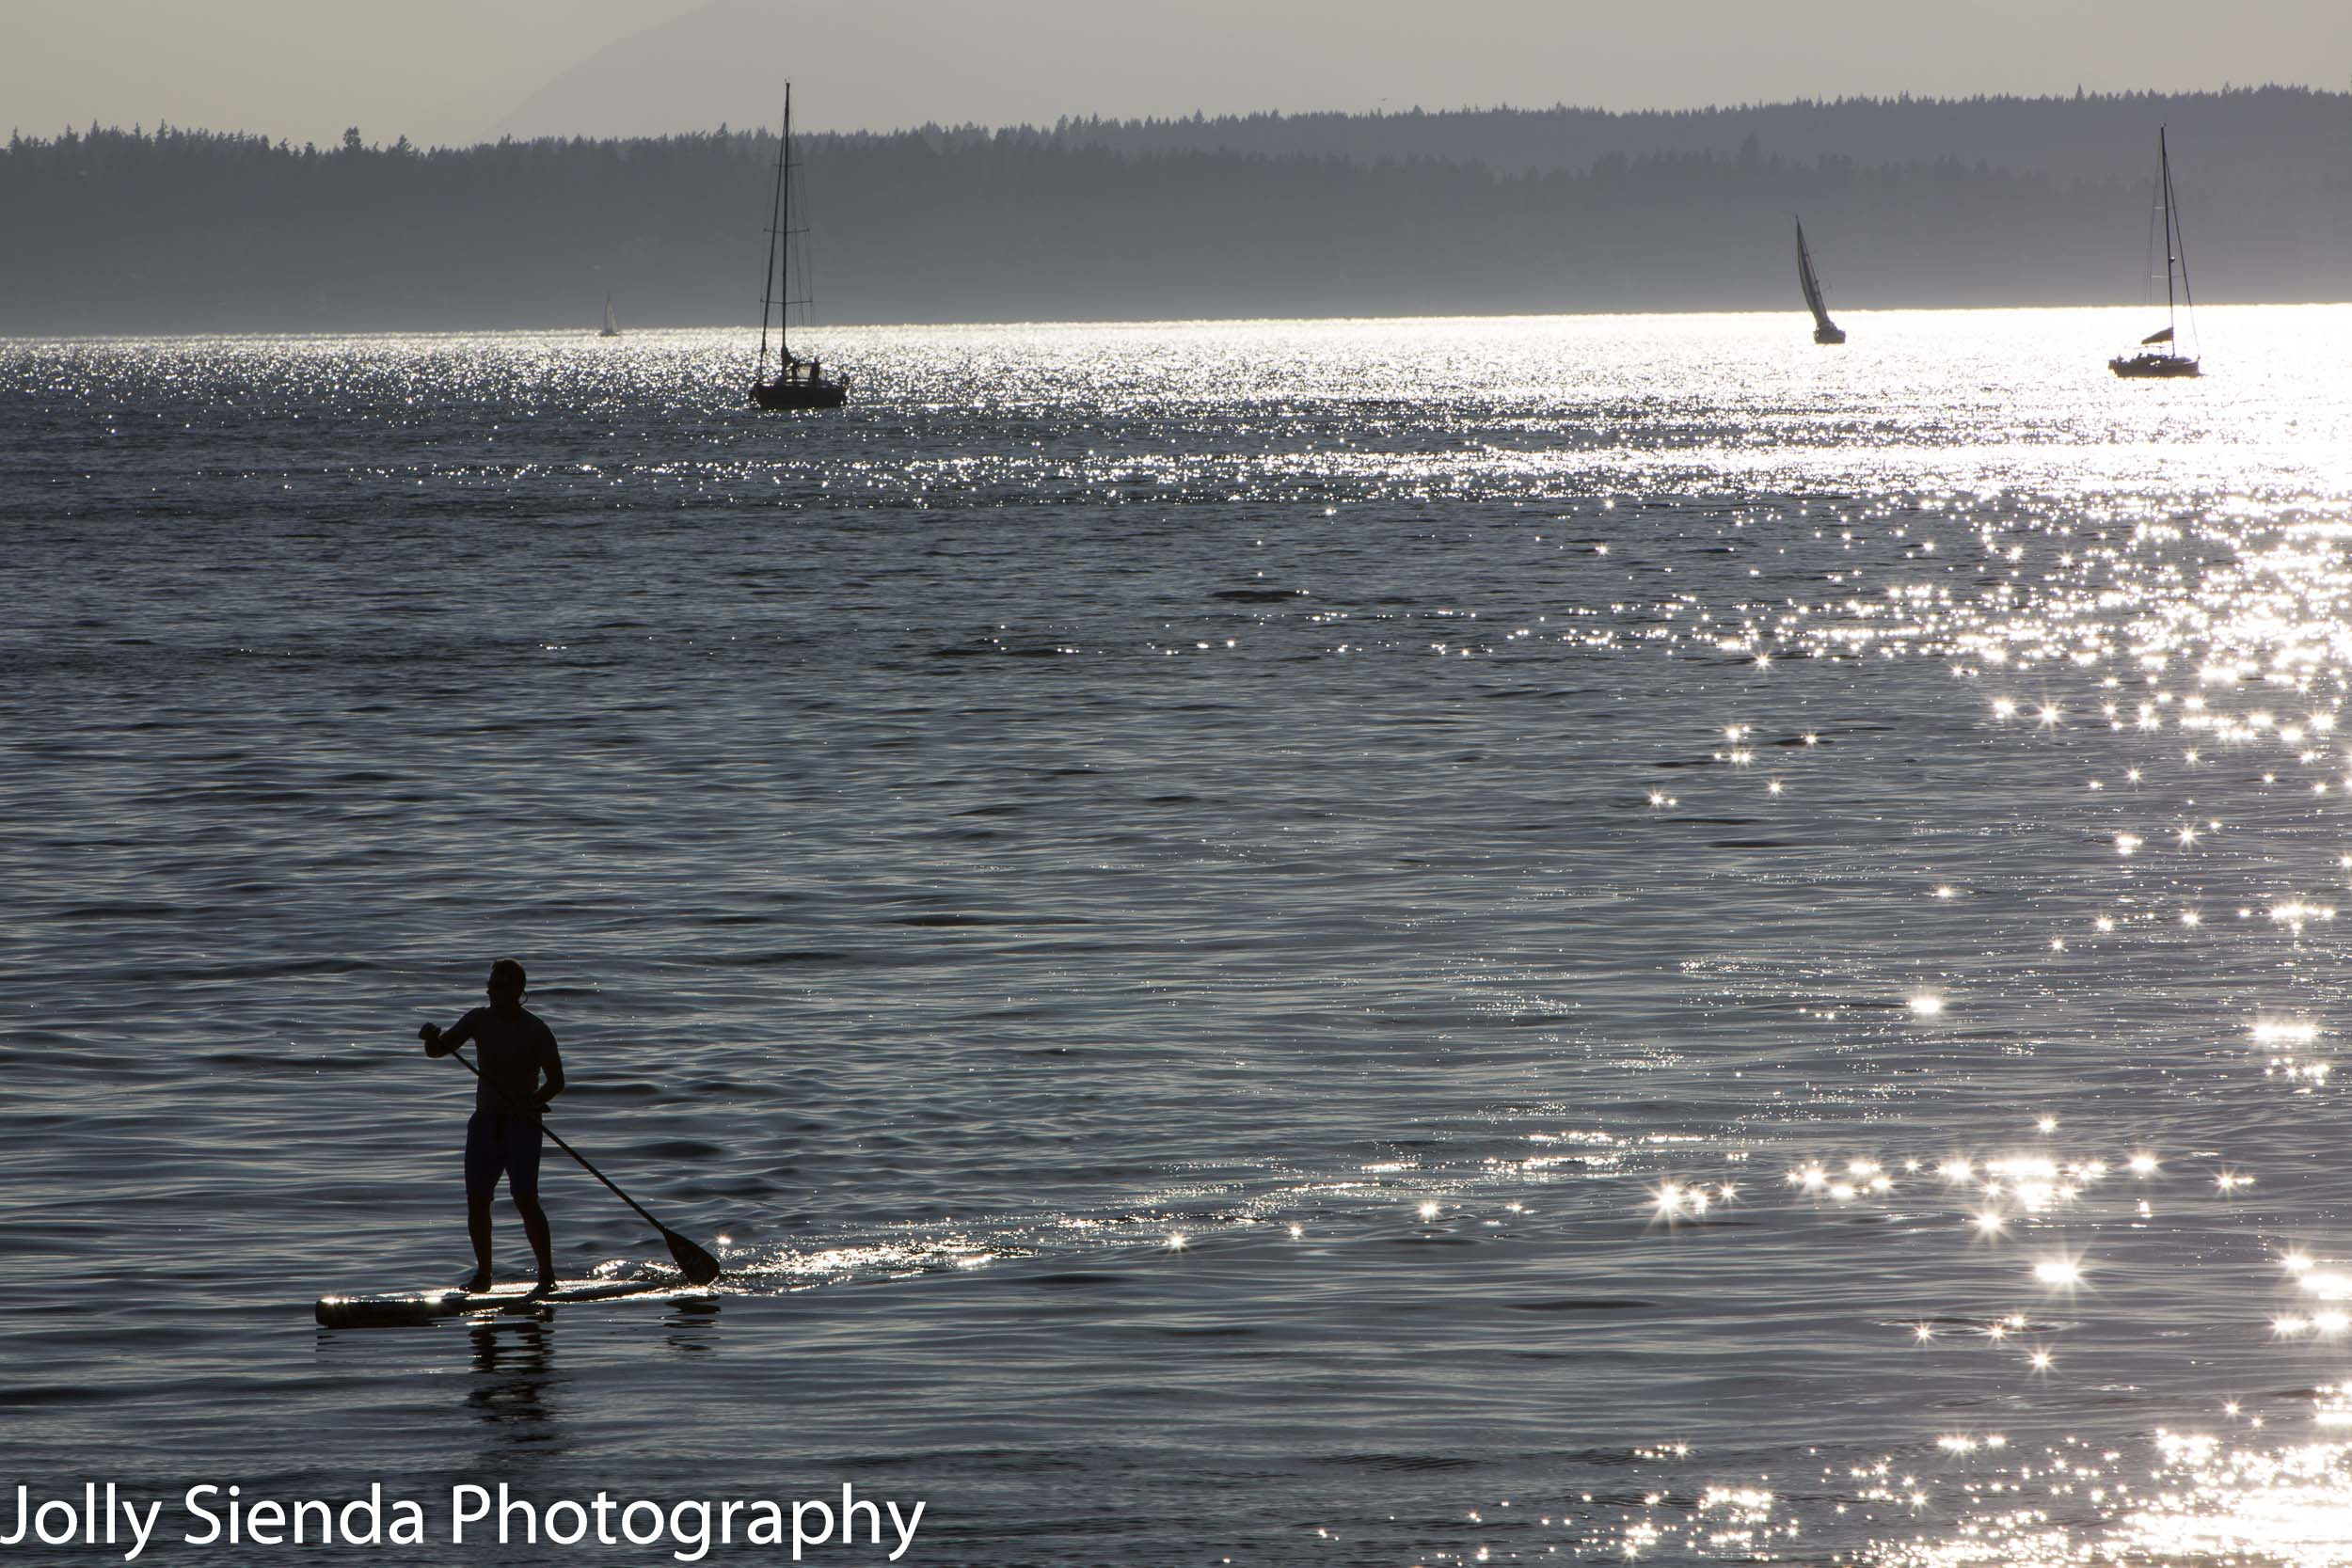 Paddle boarder and sailboats on the bay